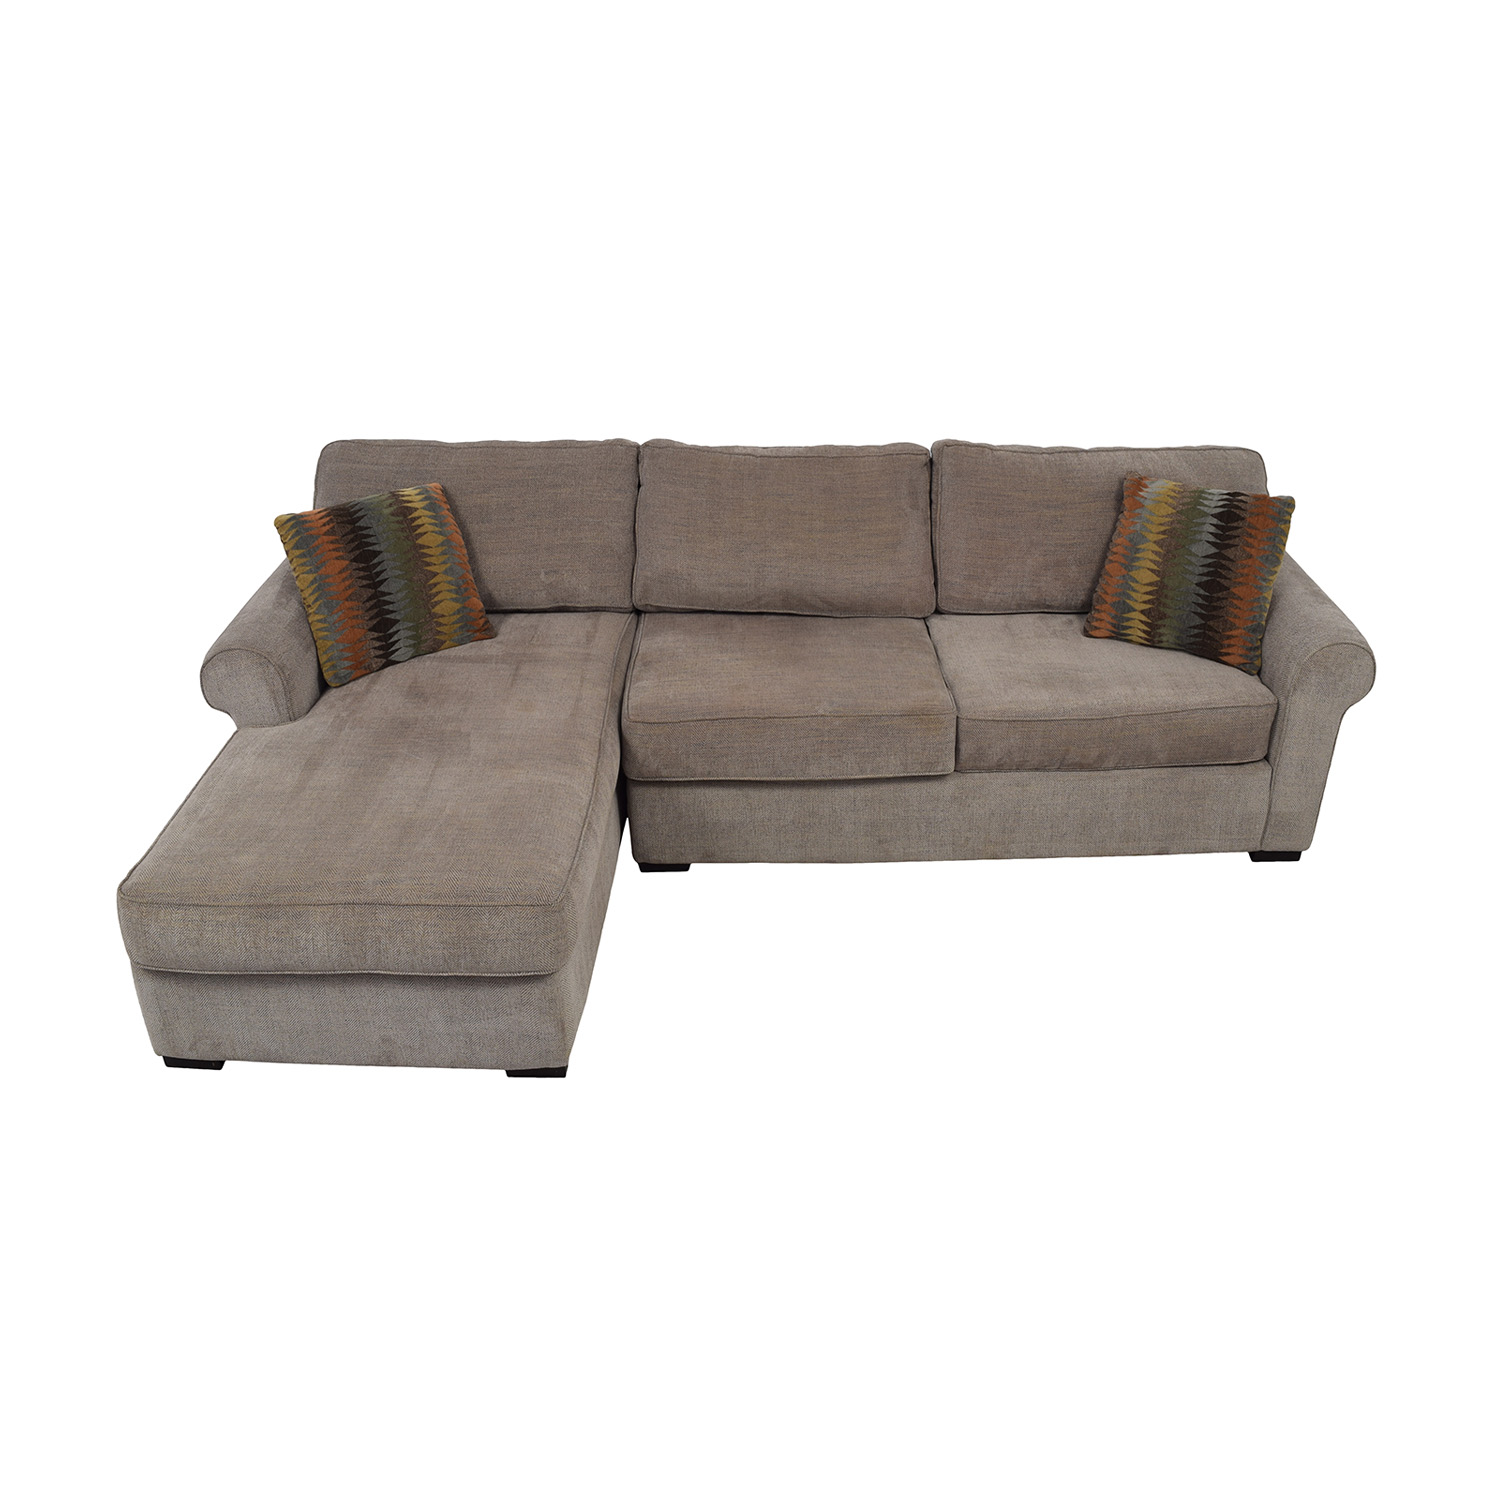 Raymour & Flanigan Raymour & Flanigan Brown Tweed Chaise Sectional discount